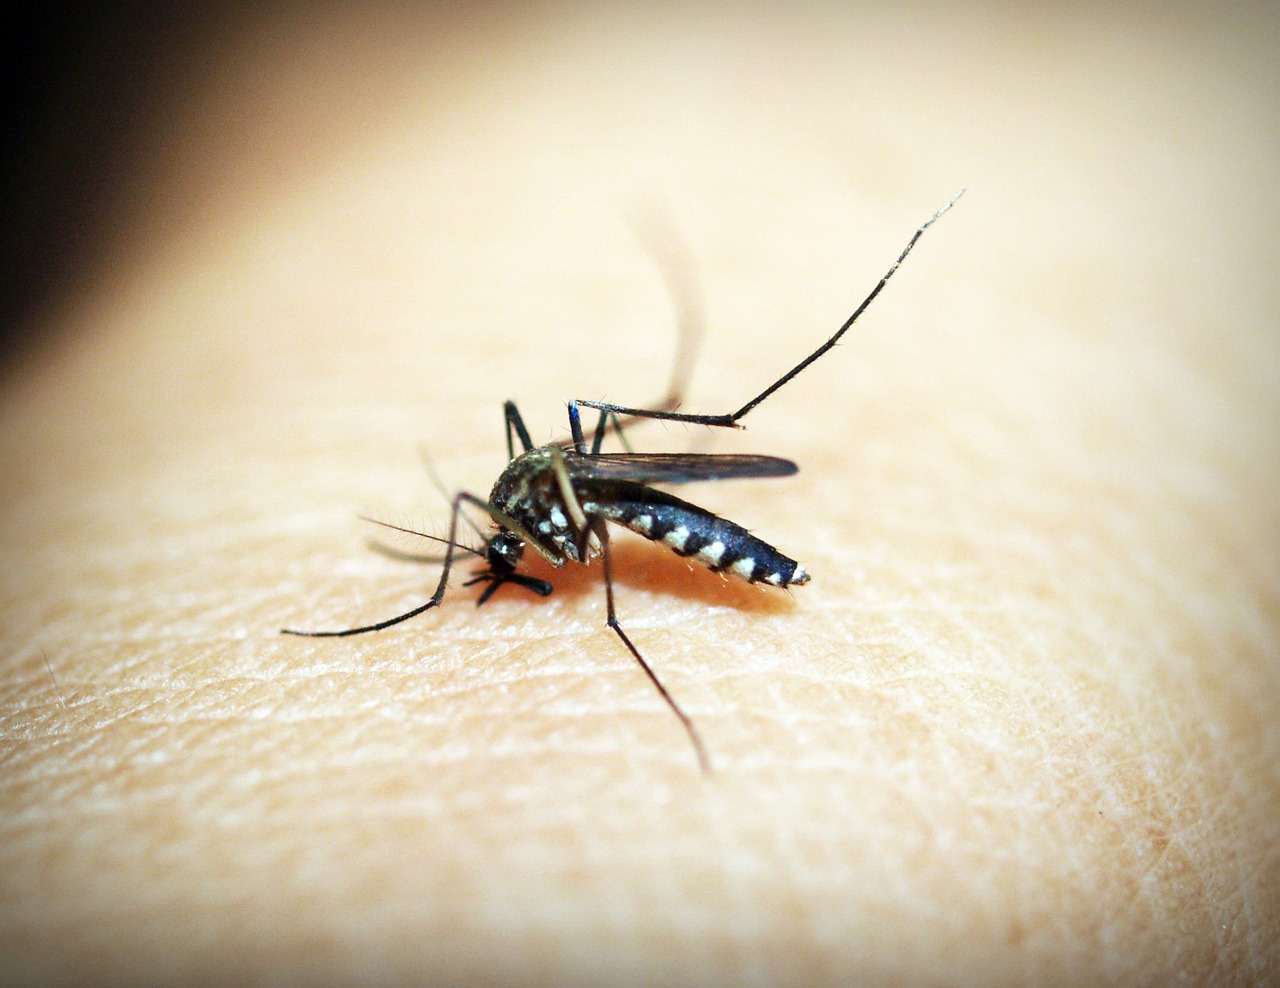 Mosquitos, Kenner Mosquito Control, Metairie Mosquito Control, Nola Mosquito Control, Nola Pest Control